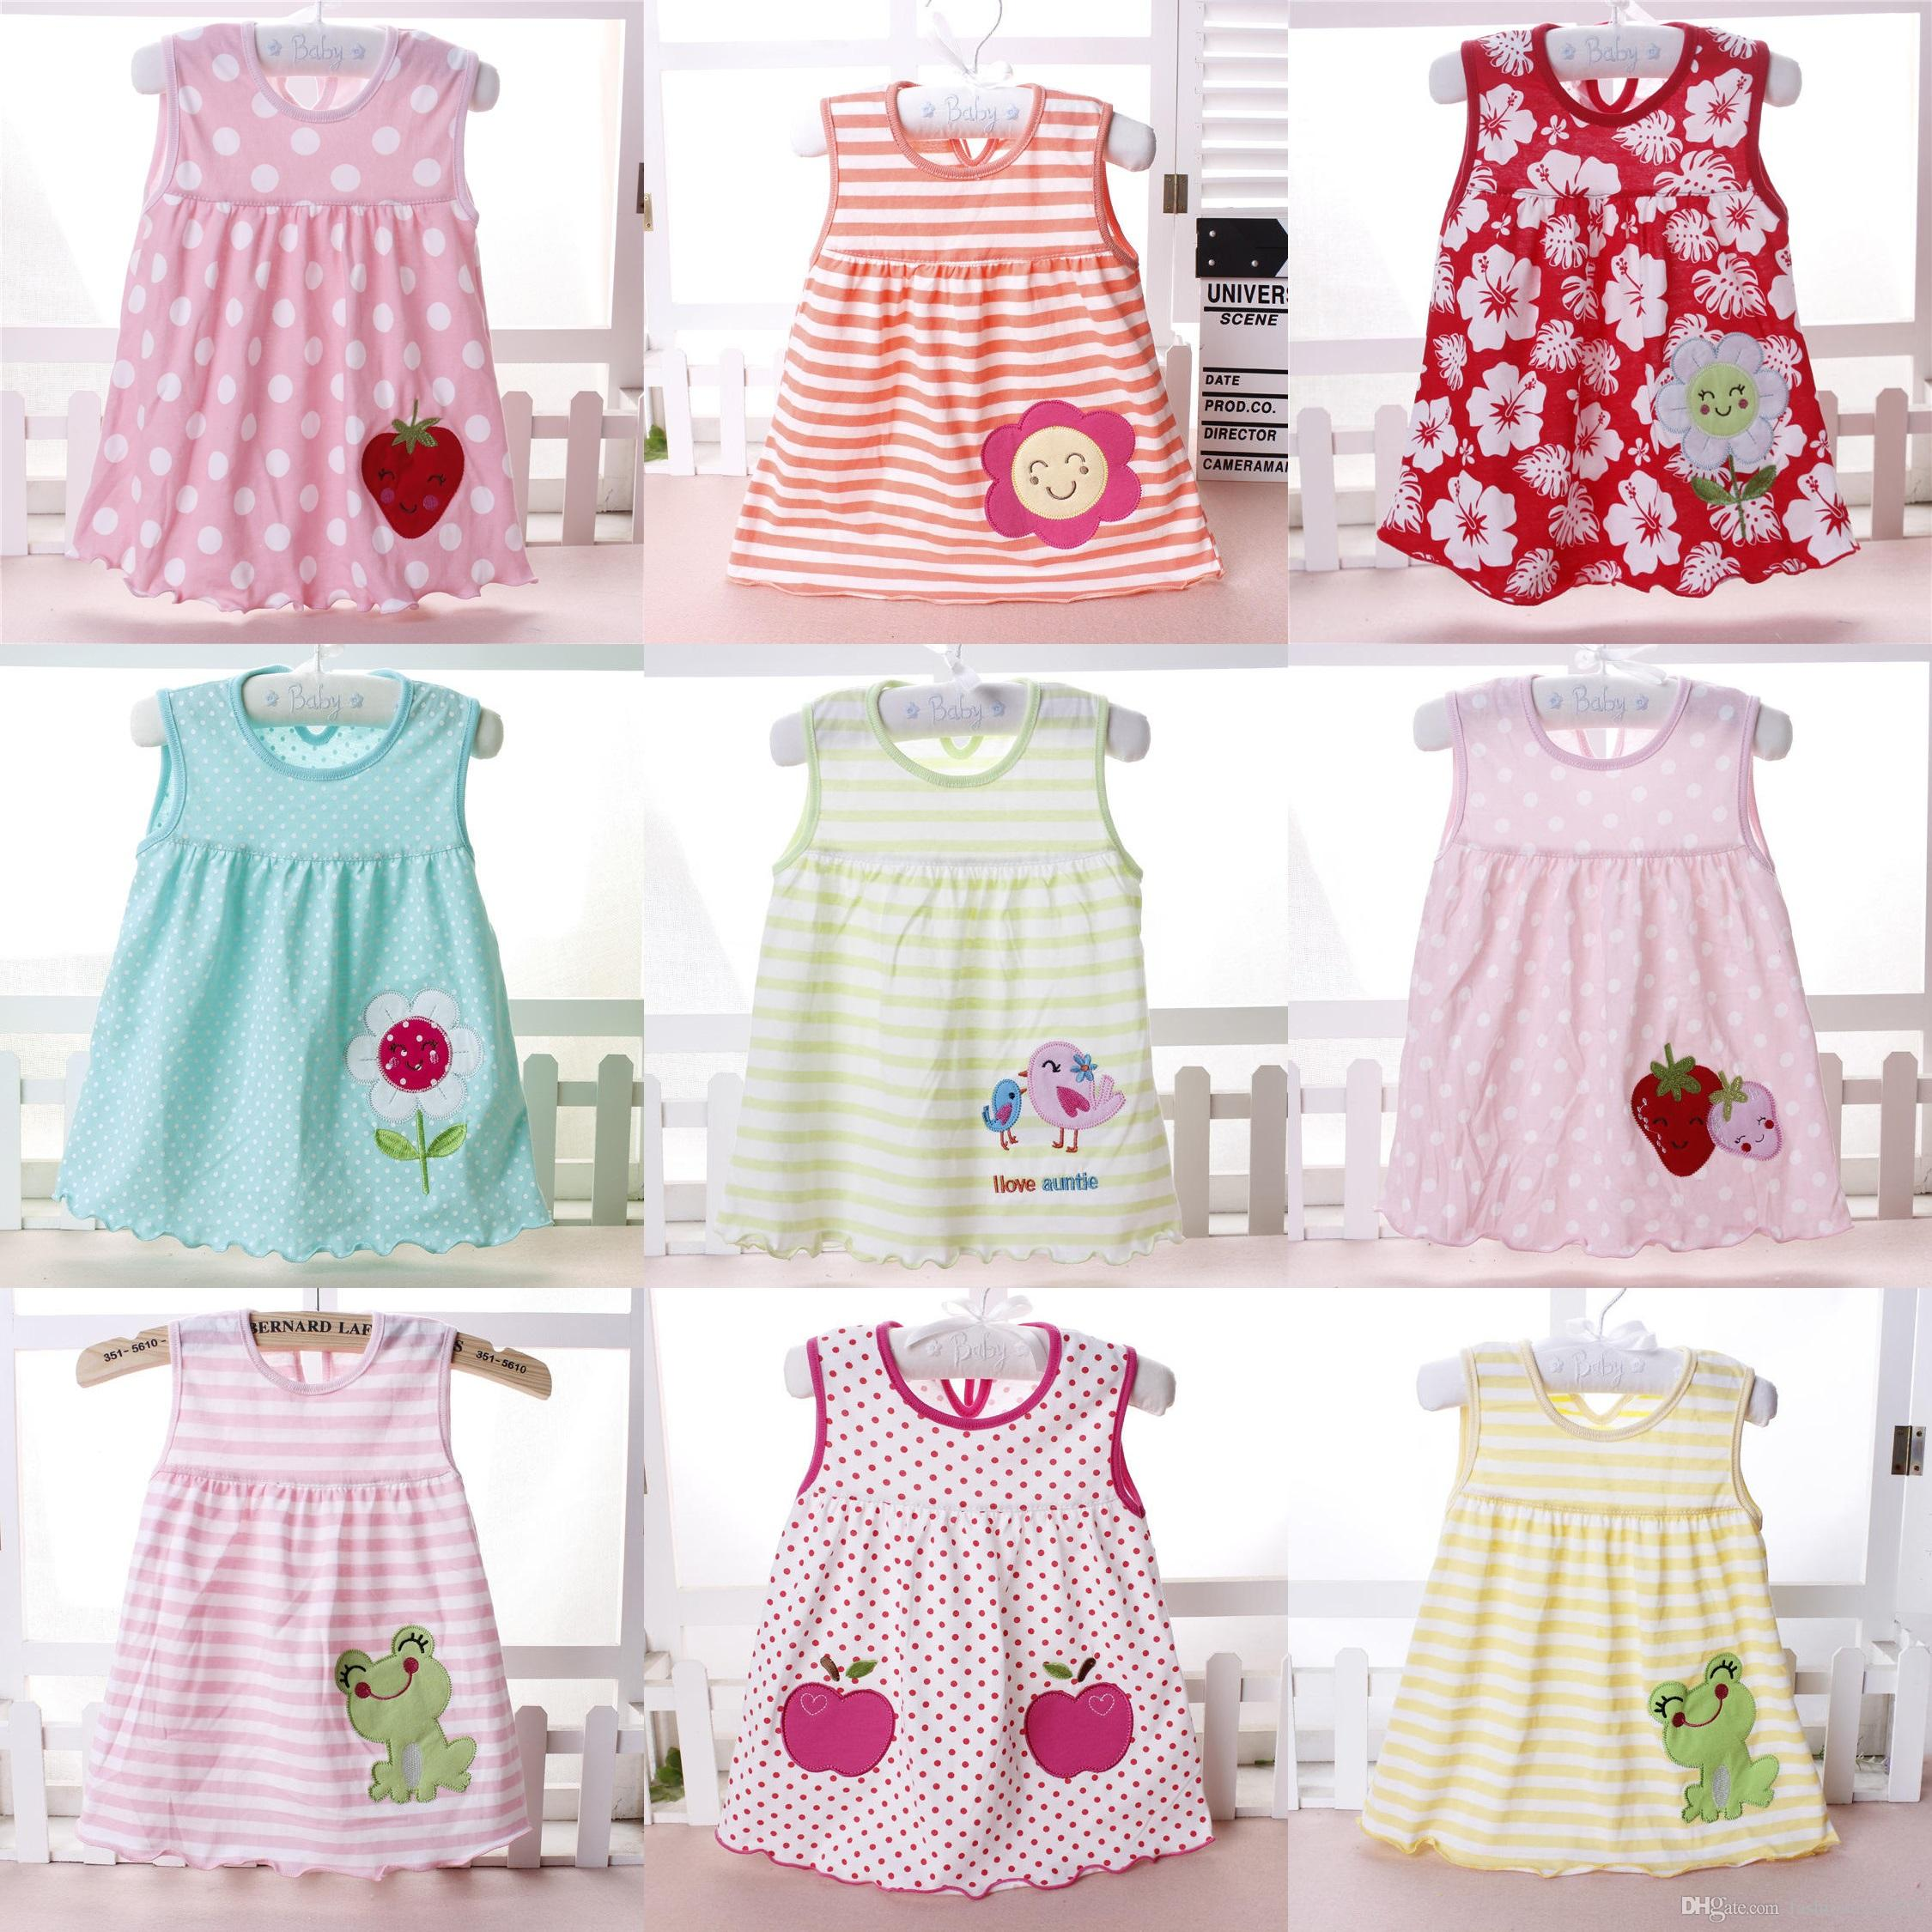 e1dc3e0506b2 2019 39 Styles Baby Girl Dress 2018 Summer Girls Dresses Style Infantile  Dress Hot Sale Baby Girl Clothes Summer Flower Style Dress Free DHL From ...